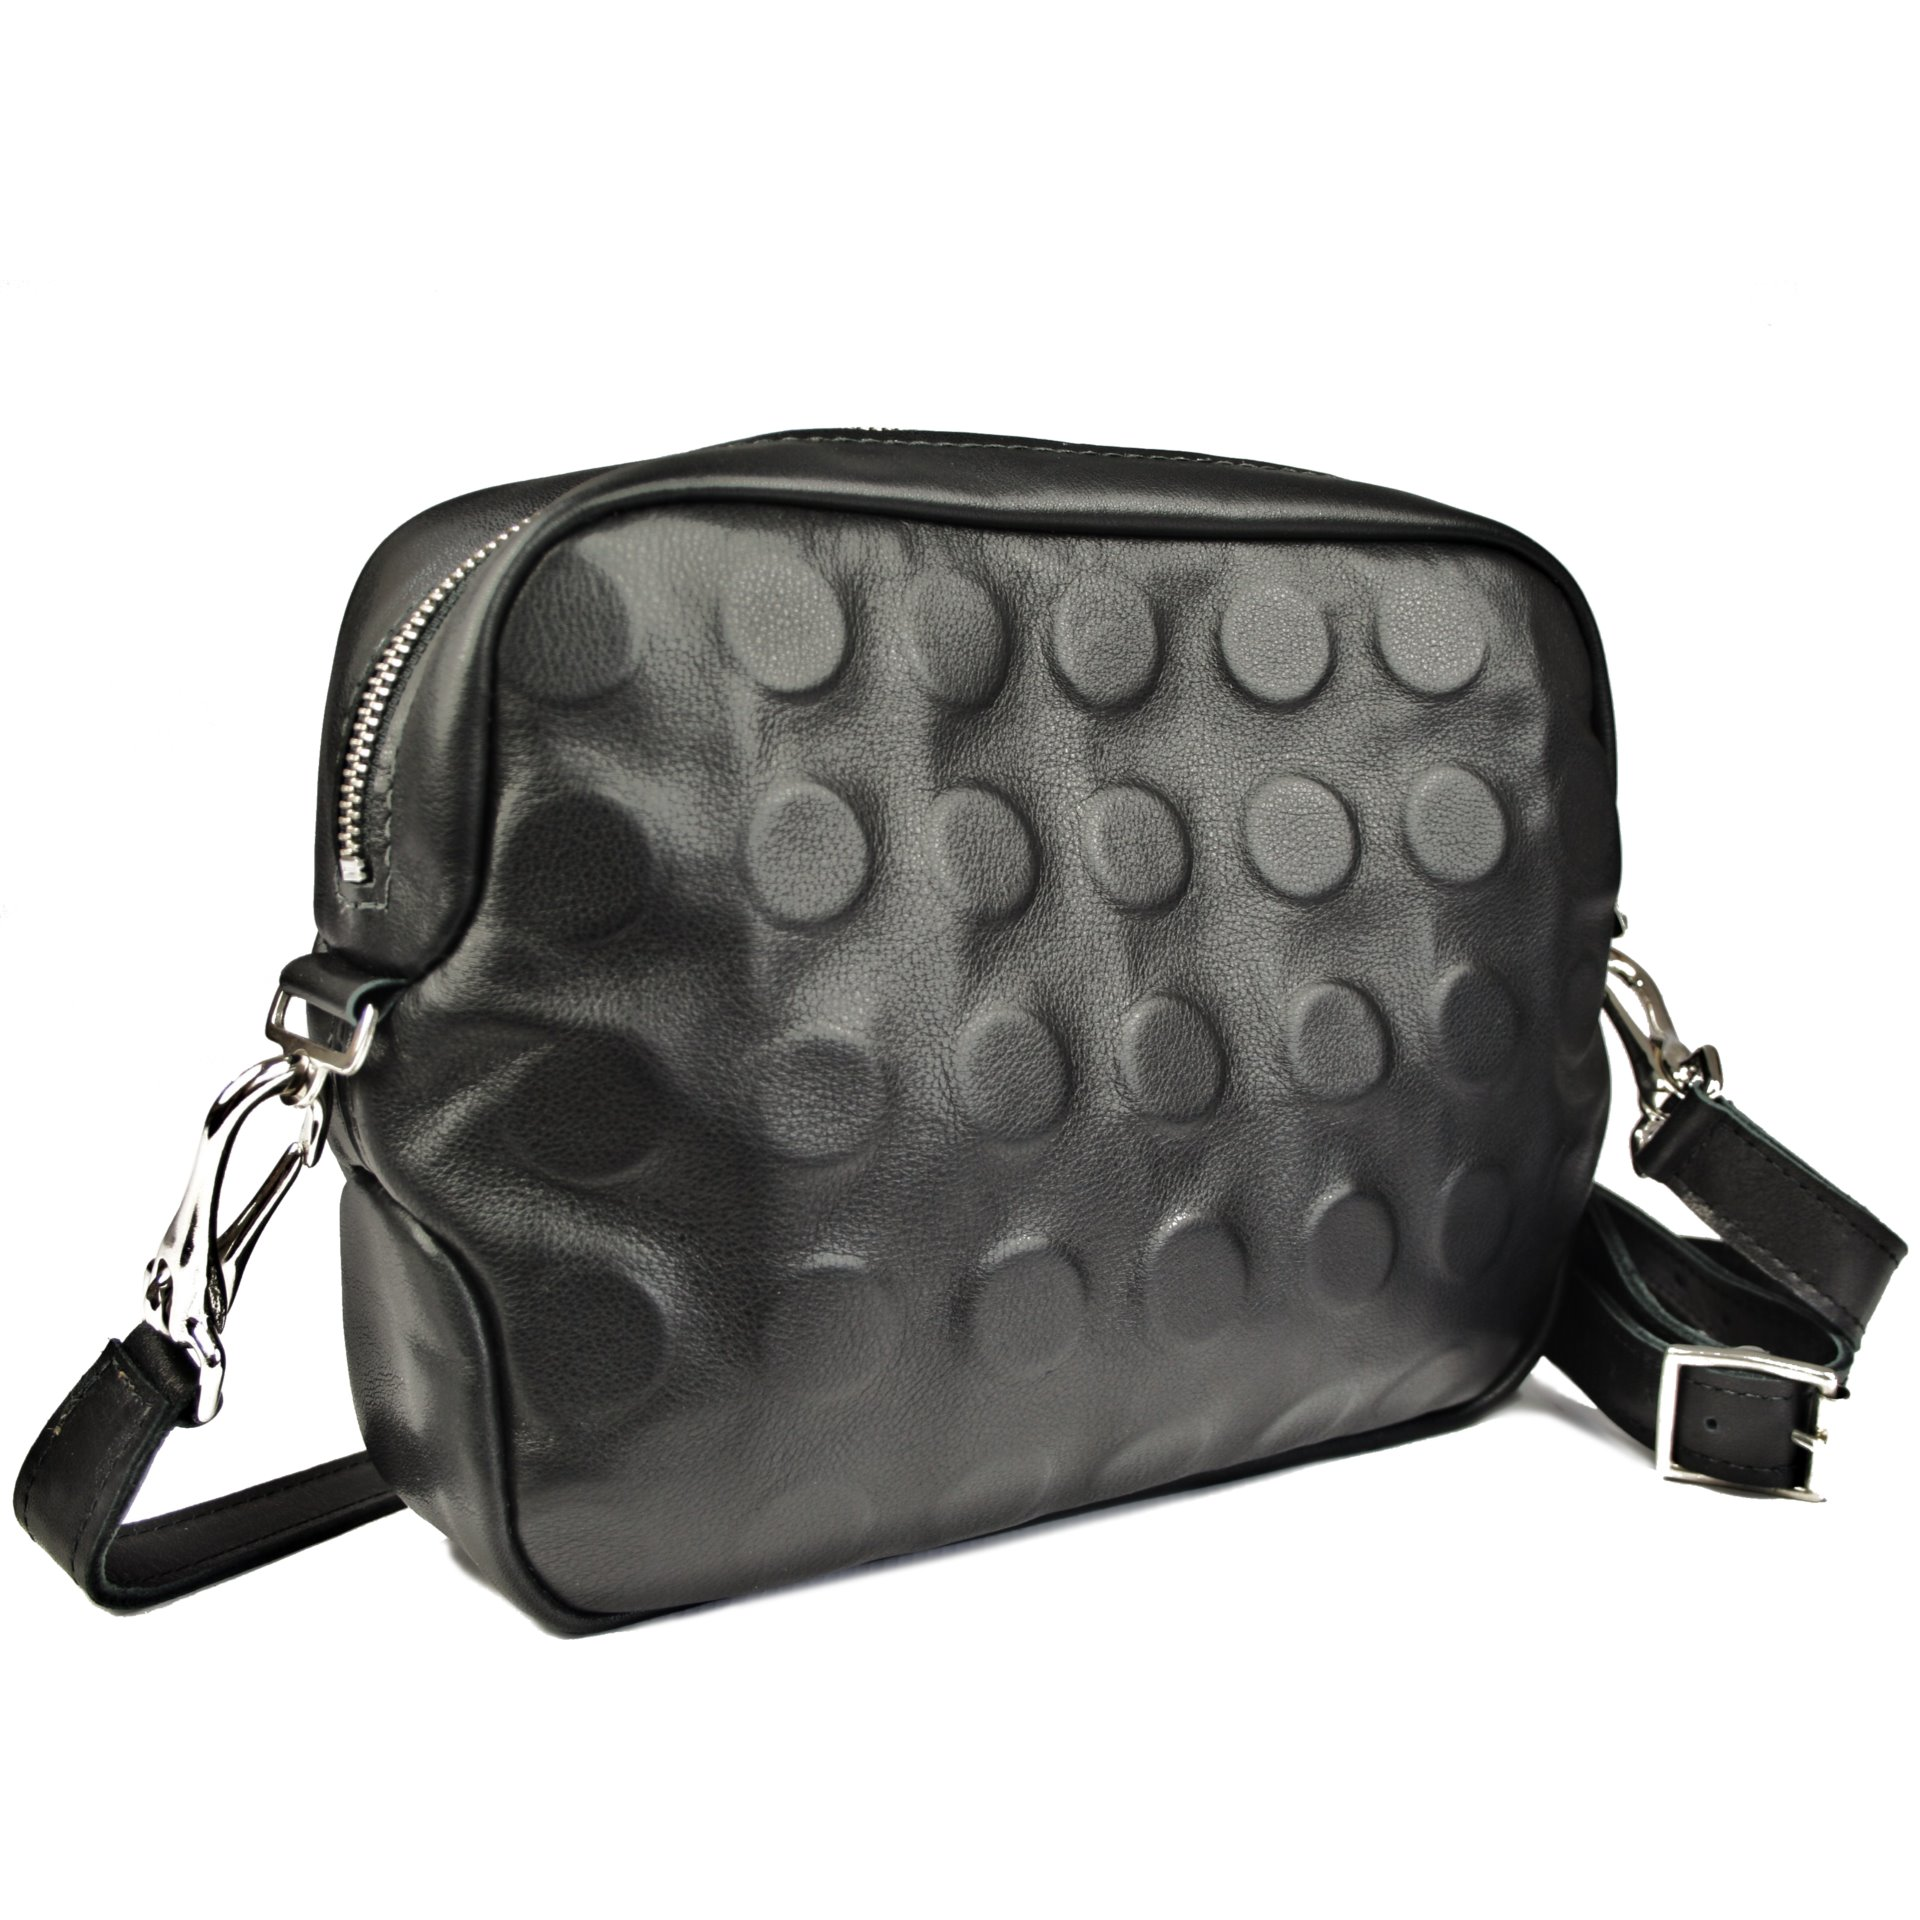 Offas Profile Dot Bag